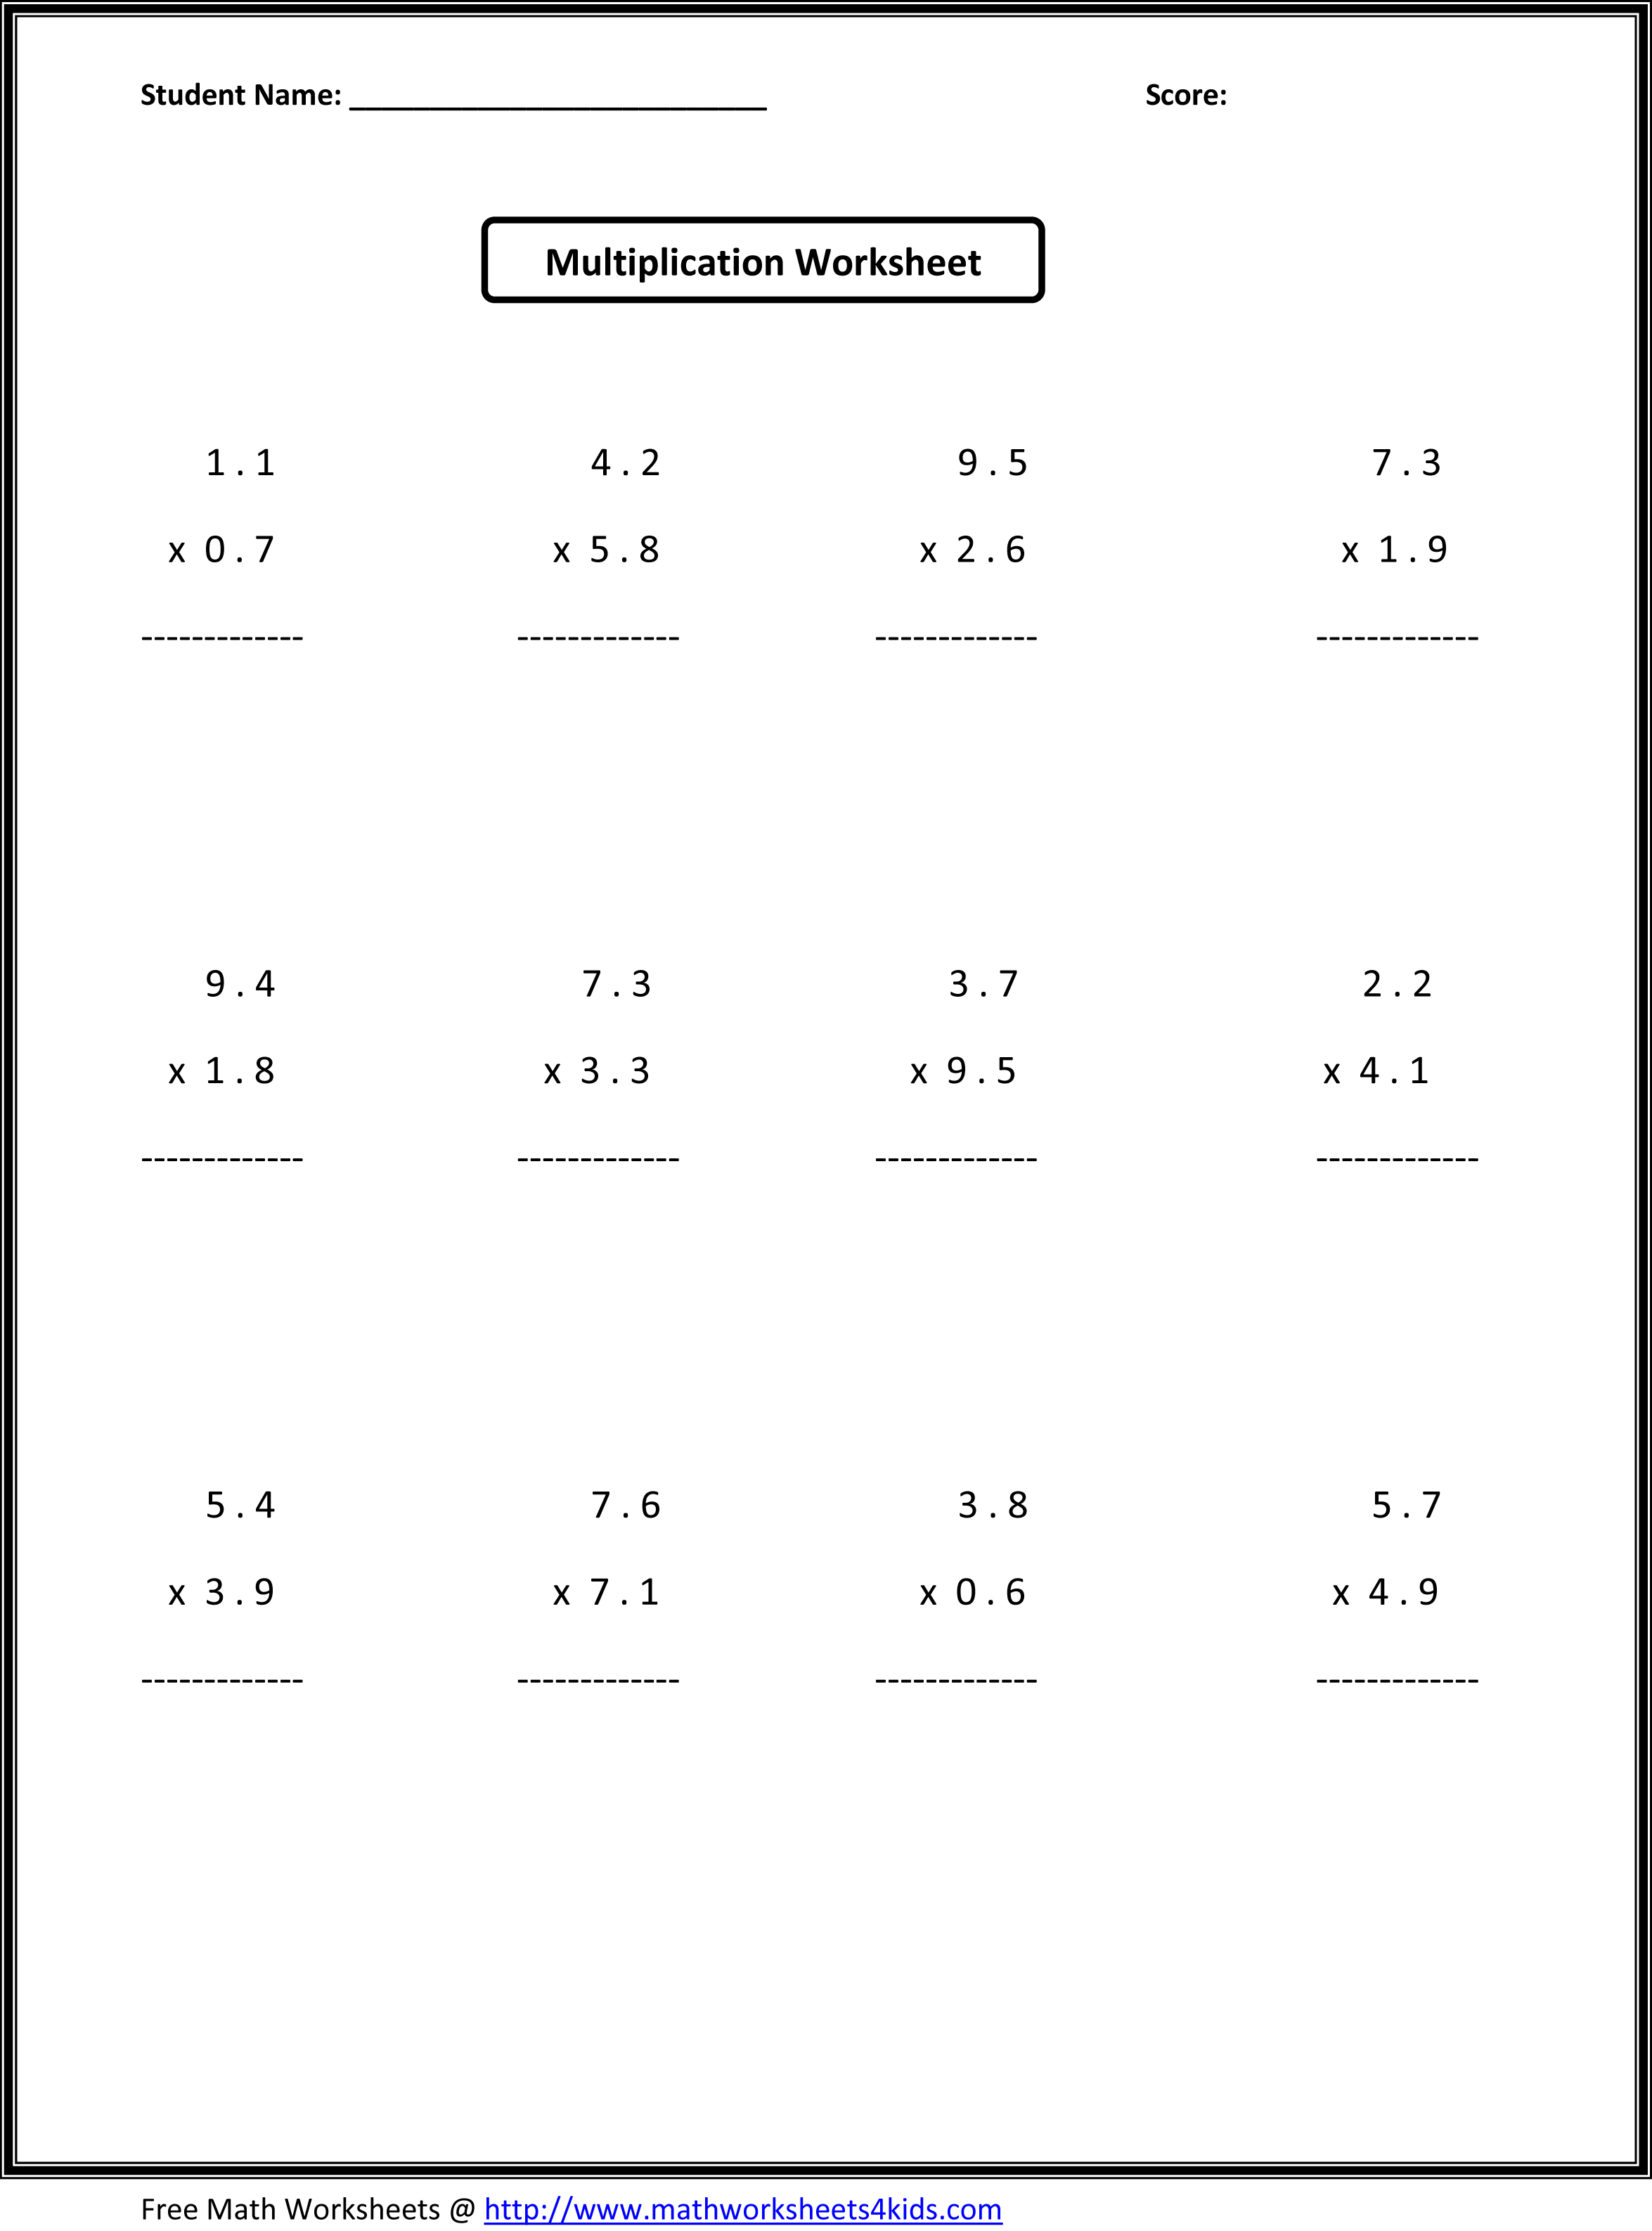 math worksheet : high quality multiplication and division worksheets grade 7 photos : Multiplying Decimals Worksheets Grade 7